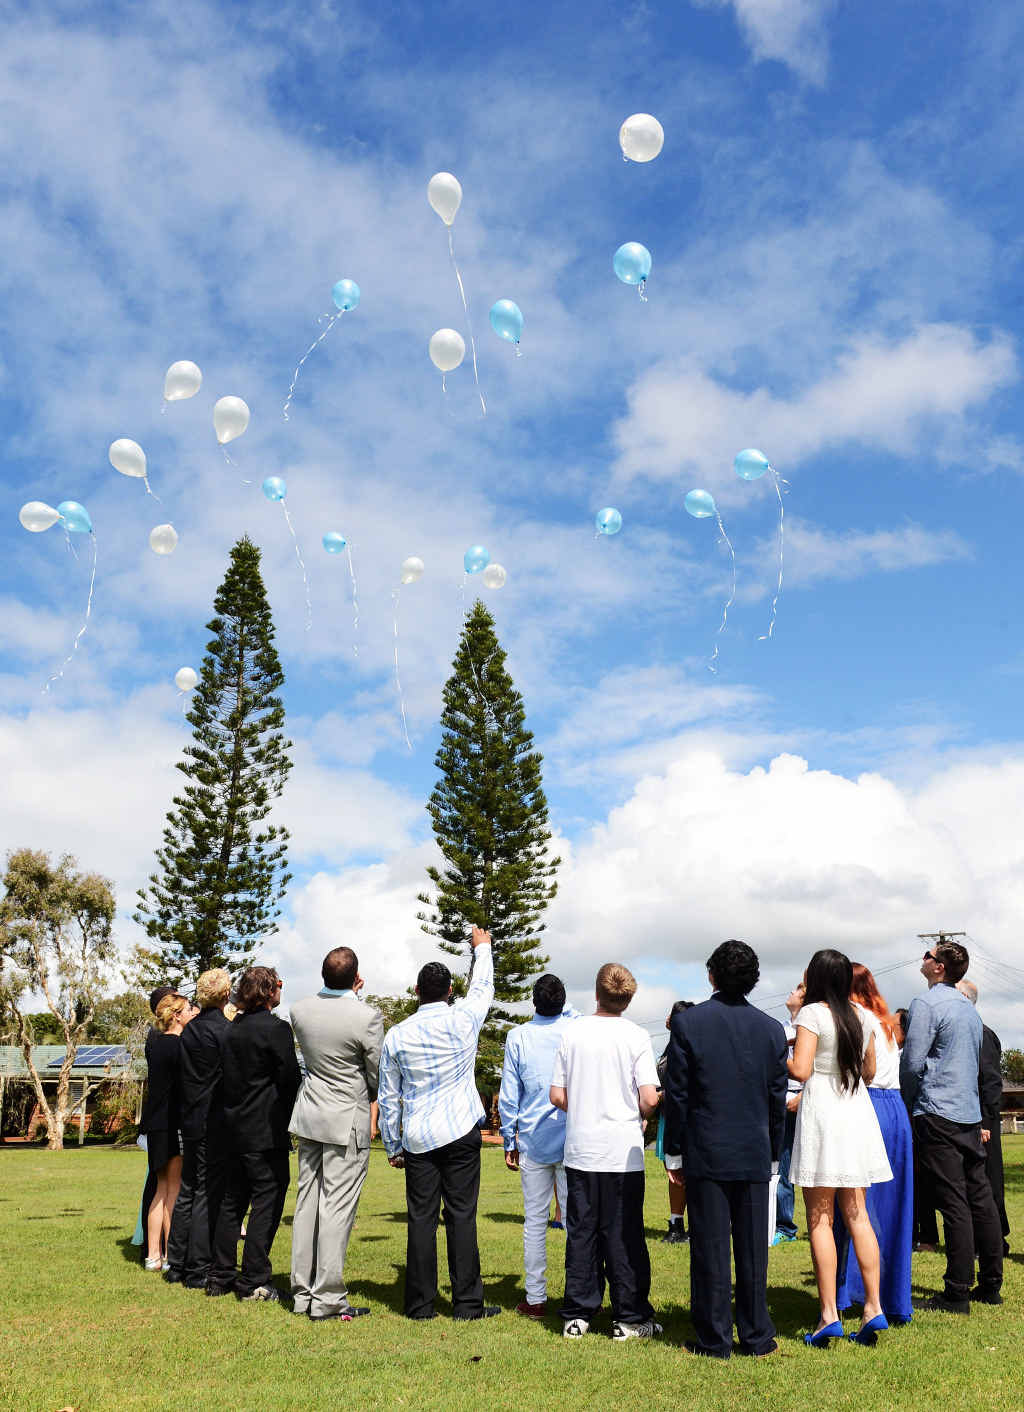 Balloons were released at the funeral of Richard James Wells at the Rainbow Chapel in West Ballina. Mr Wells died in a car crash at Newrybar last week.